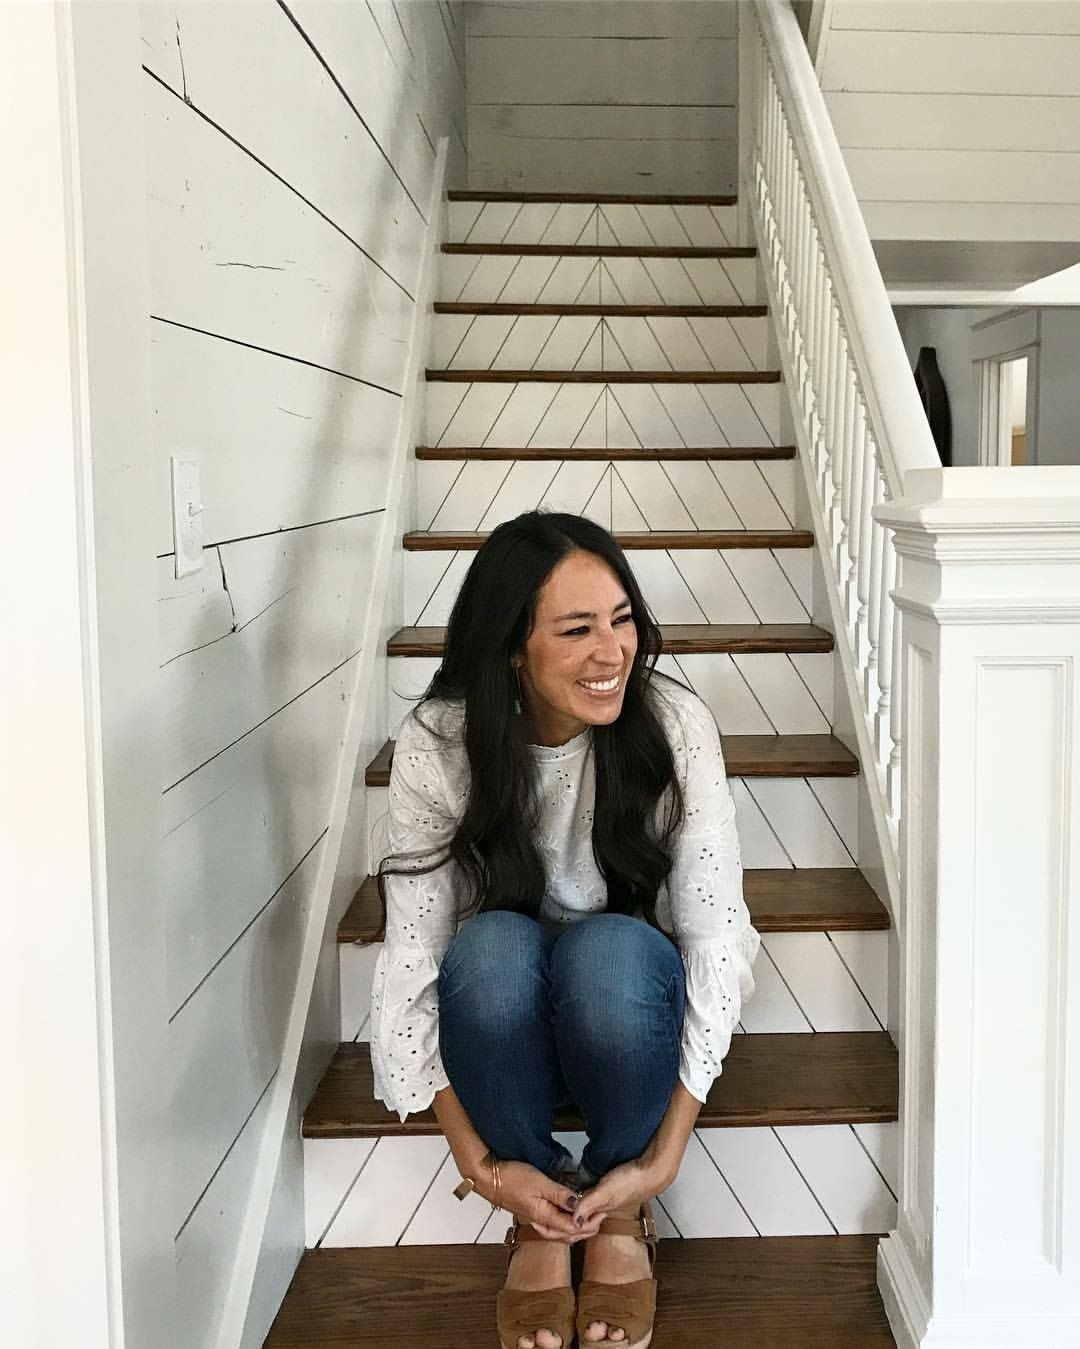 Chips Et Joanna Gaines stair details!! joanna gaines stairs #foyerdecoratingstairs